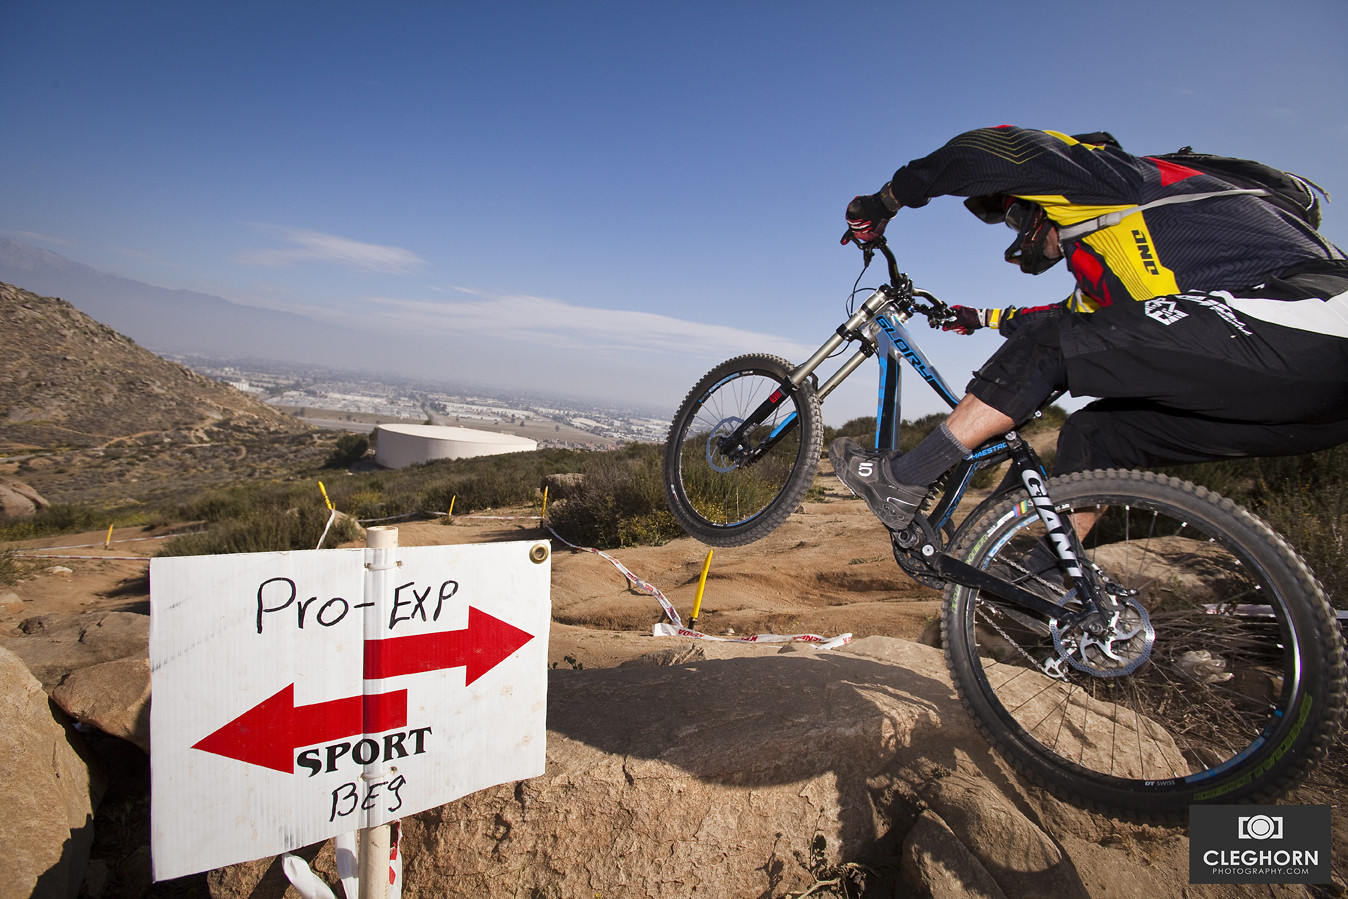 Which way are you going? - Cleghorn Photography - Mountain Biking Pictures - Vital MTB